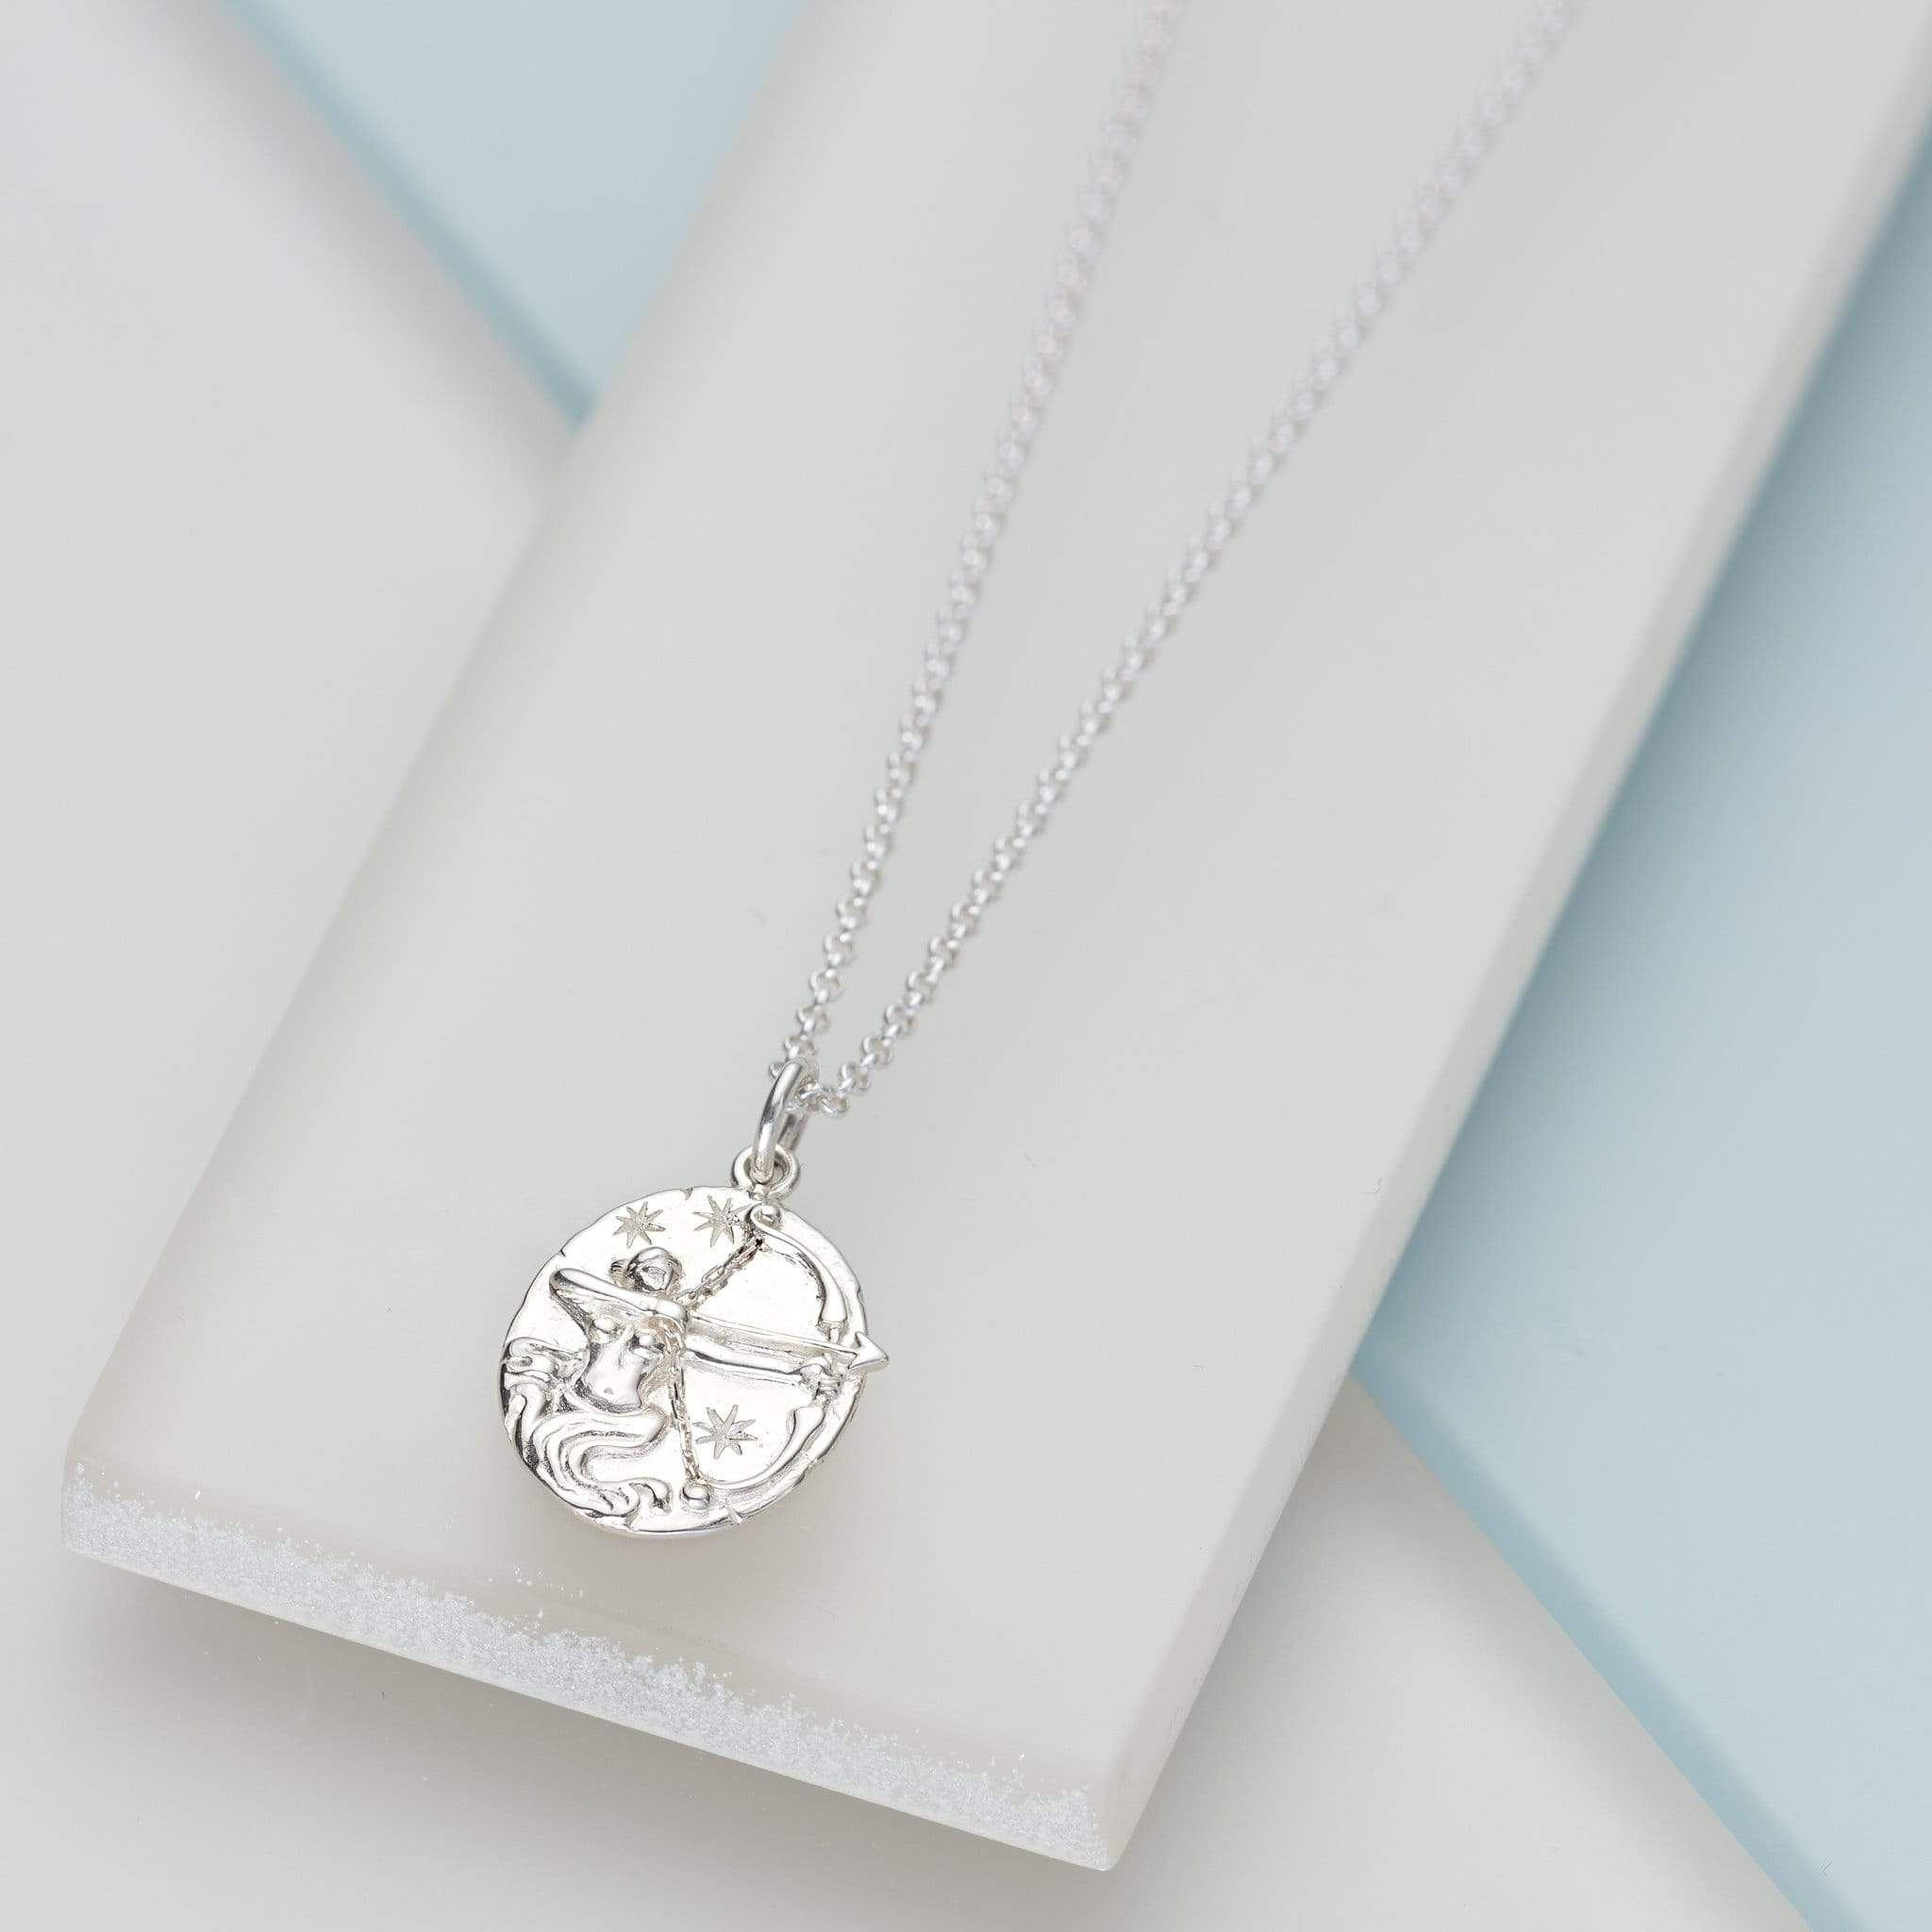 Engraved Silver Sagittarius Zodiac Necklace - Lily Charmed